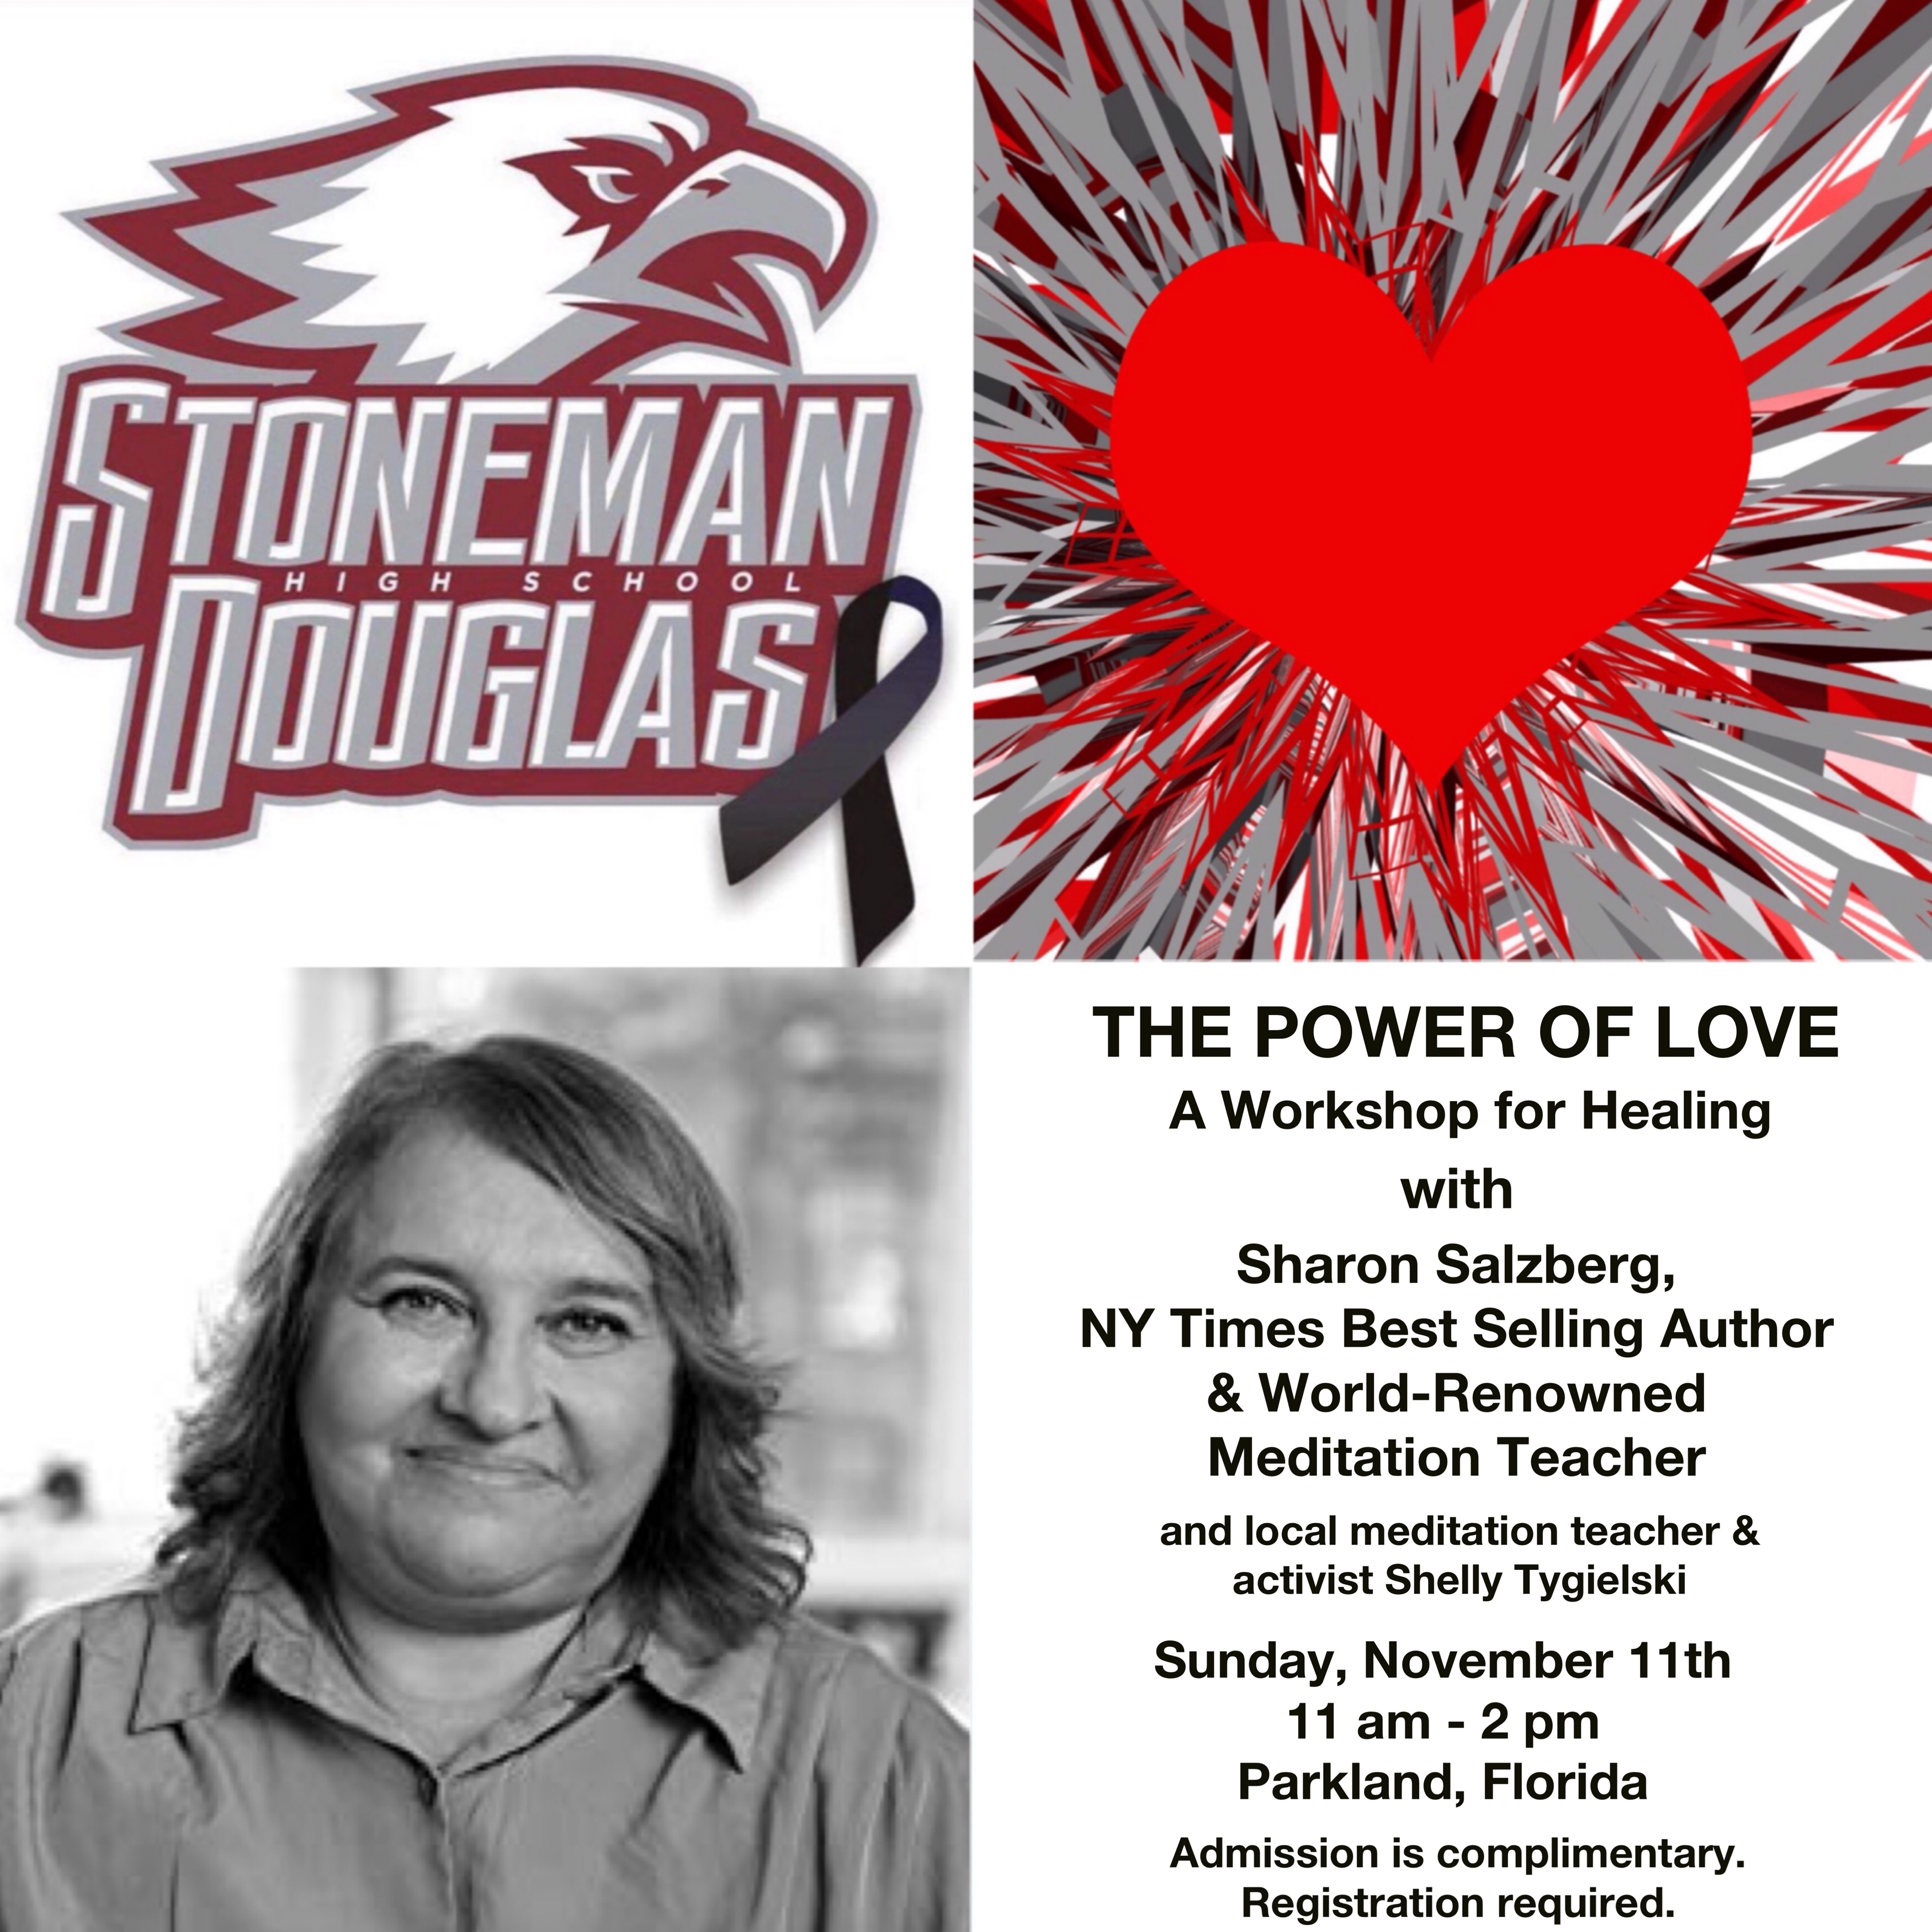 The Power of Love: A Healing Workshop in Parkland with Sharon Salzberg + Shelly Tygielski